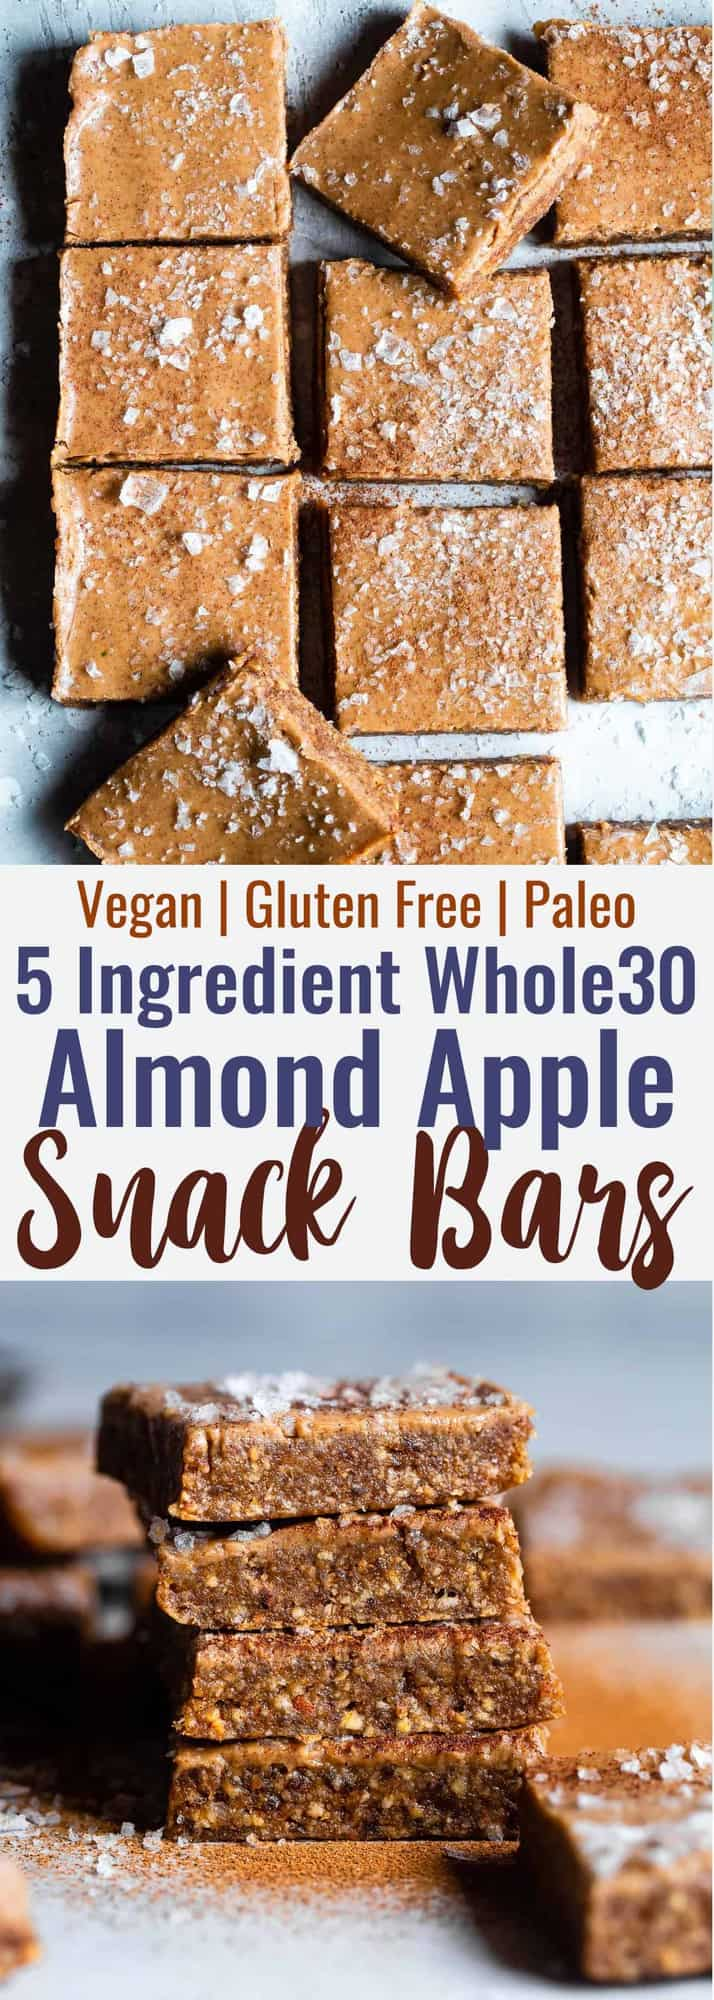 No Bake Whole30 Apple Almond Butter Bars - an EASY, 5 ingredient, salty-sweet and healthy snack that is gluten free, dairy free, sugar free and paleo and whole30 compliant! Great for kids and adults! | #Foodfaithfitness | #Paleo #whole30 #glutenfree #dairyfree #healthy